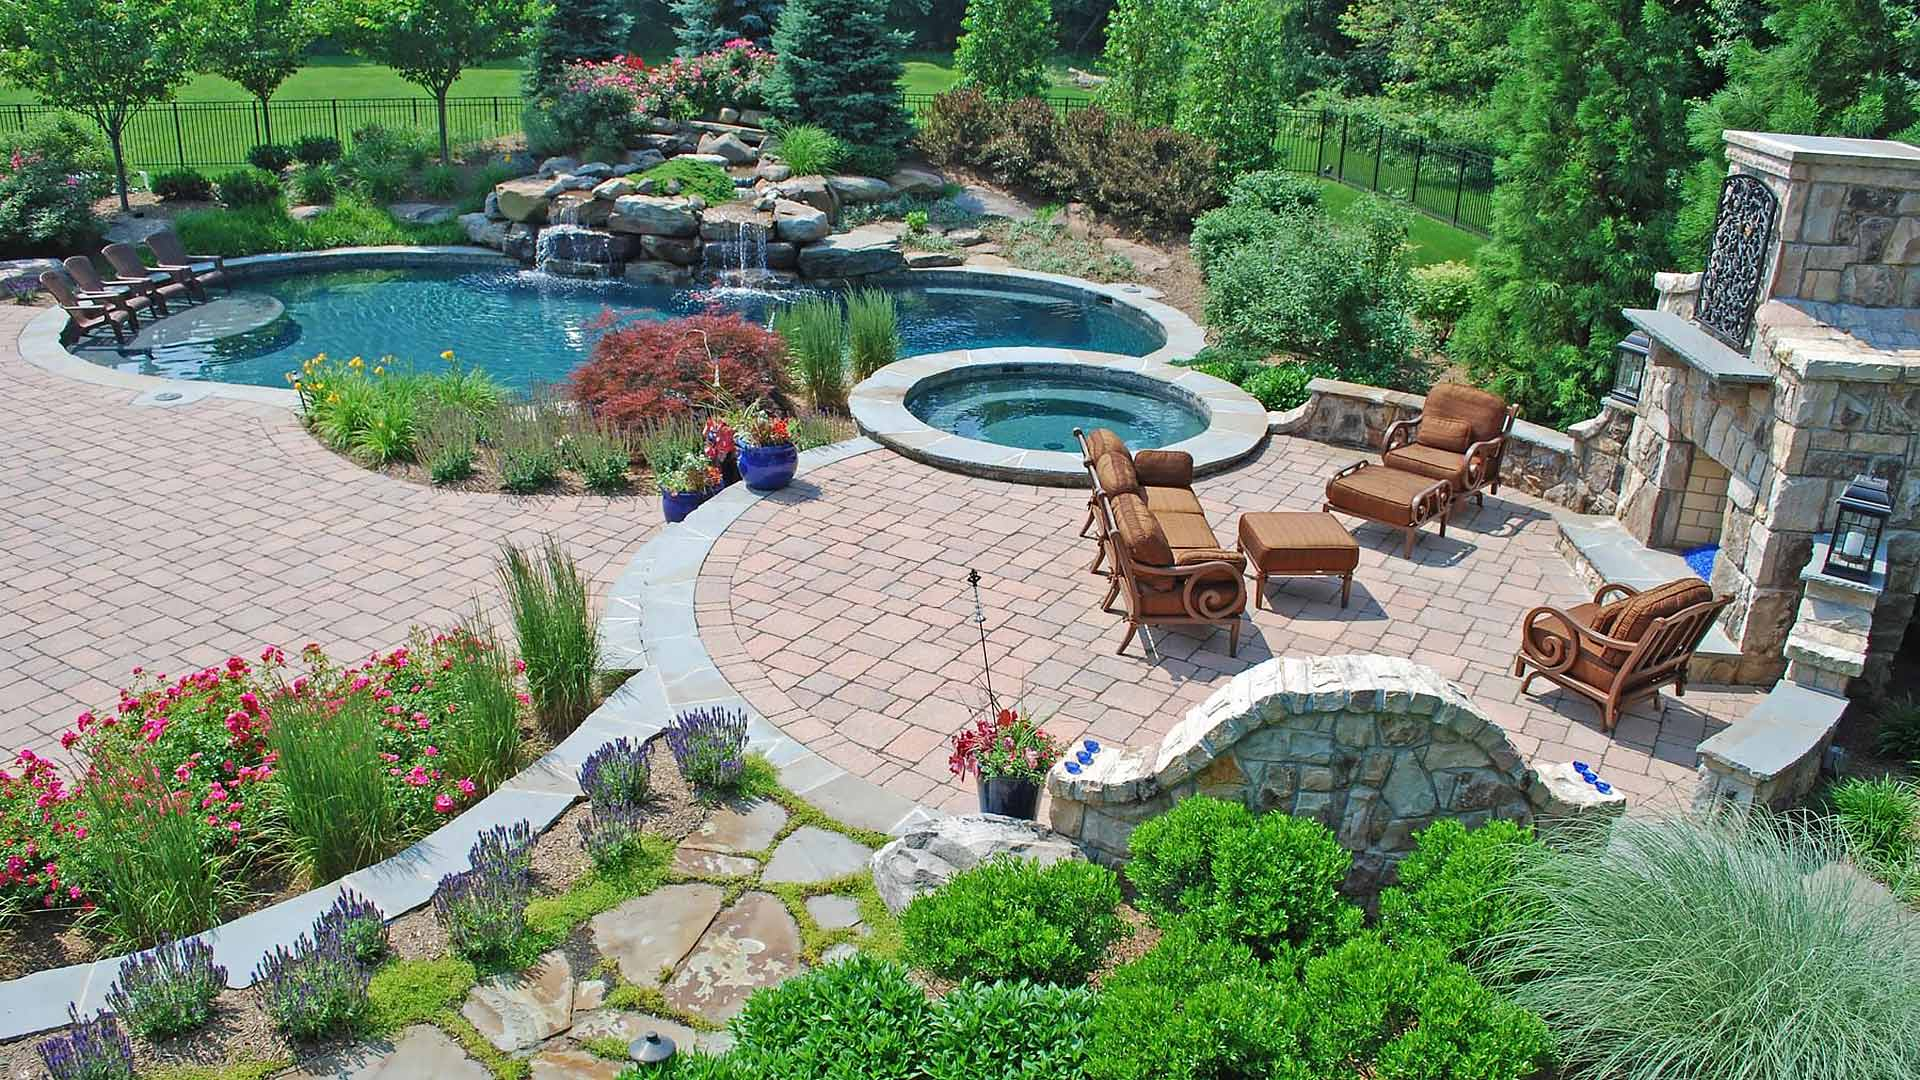 Beautiful outdoor living area and pool in West Chester, PA.